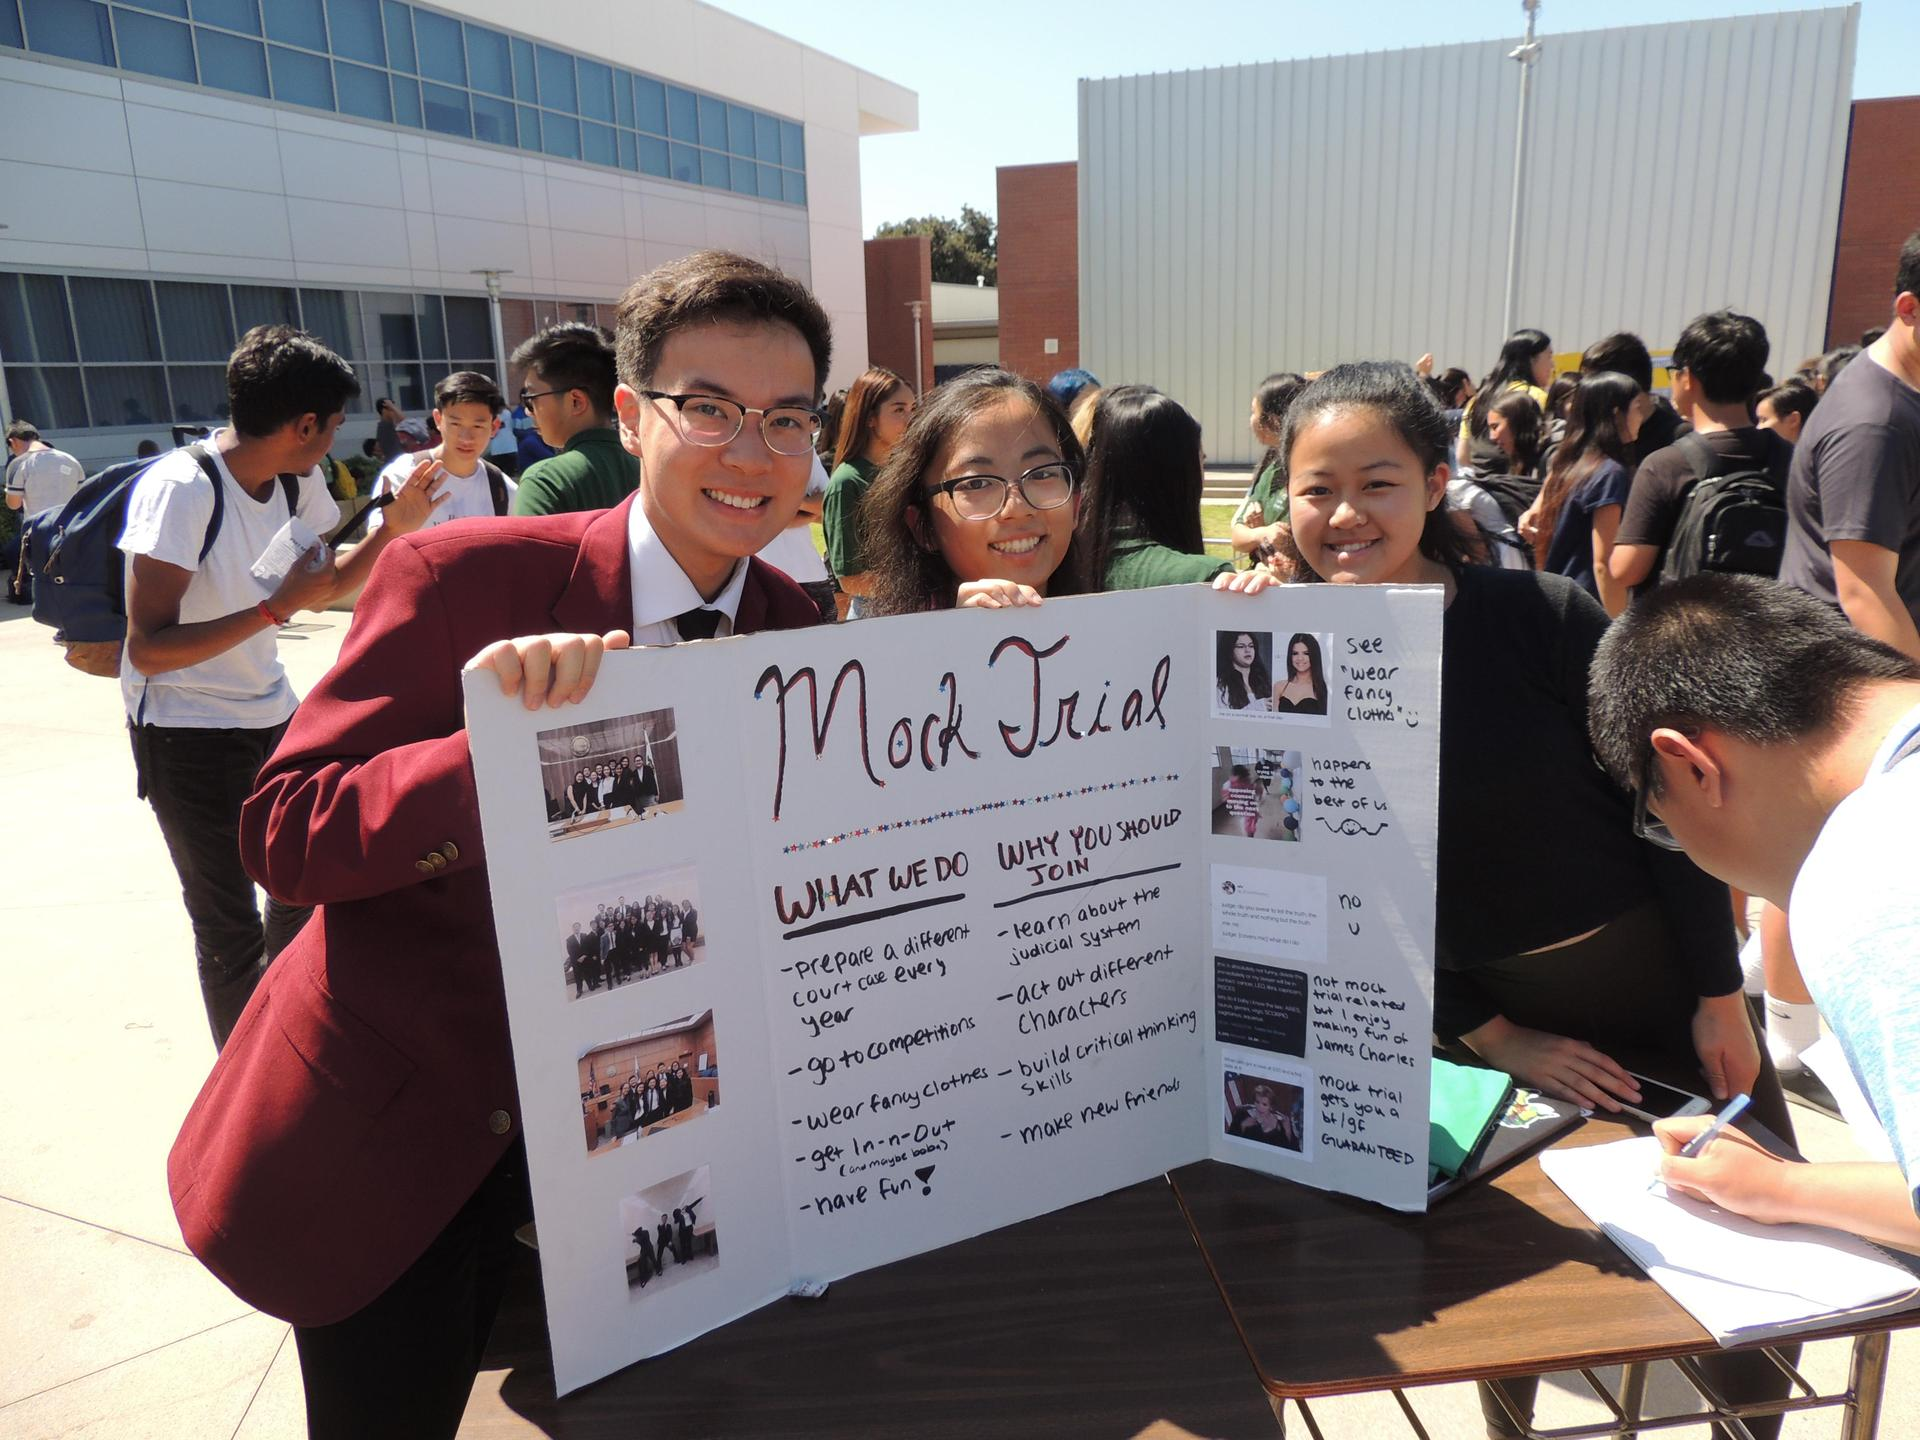 Arcadia High's Mock Trial team recruiting at Club Day